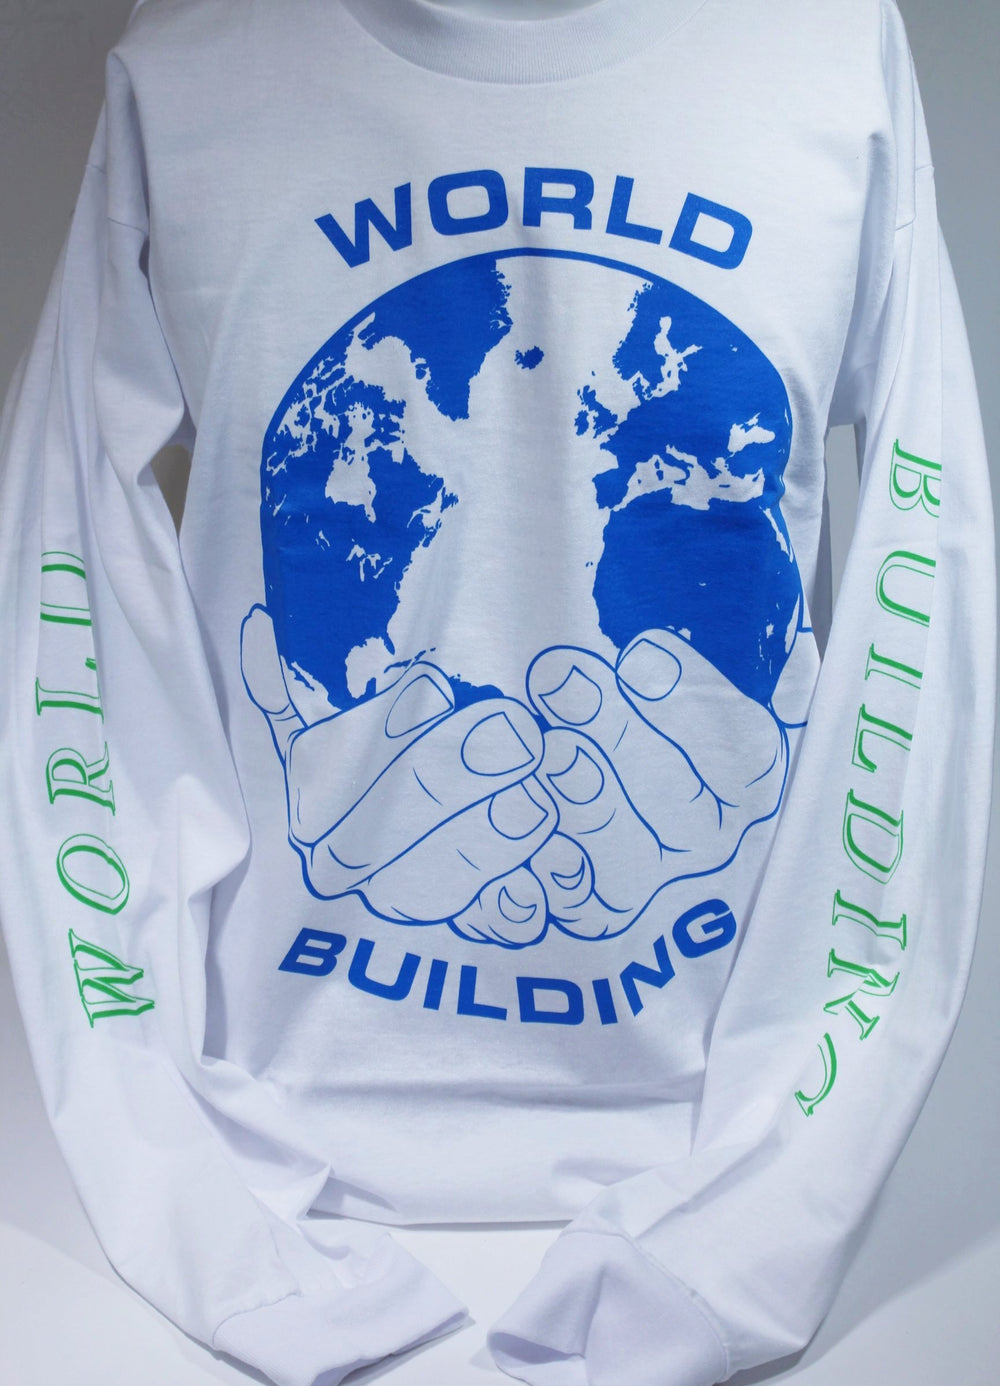 World Building Long Sleeve